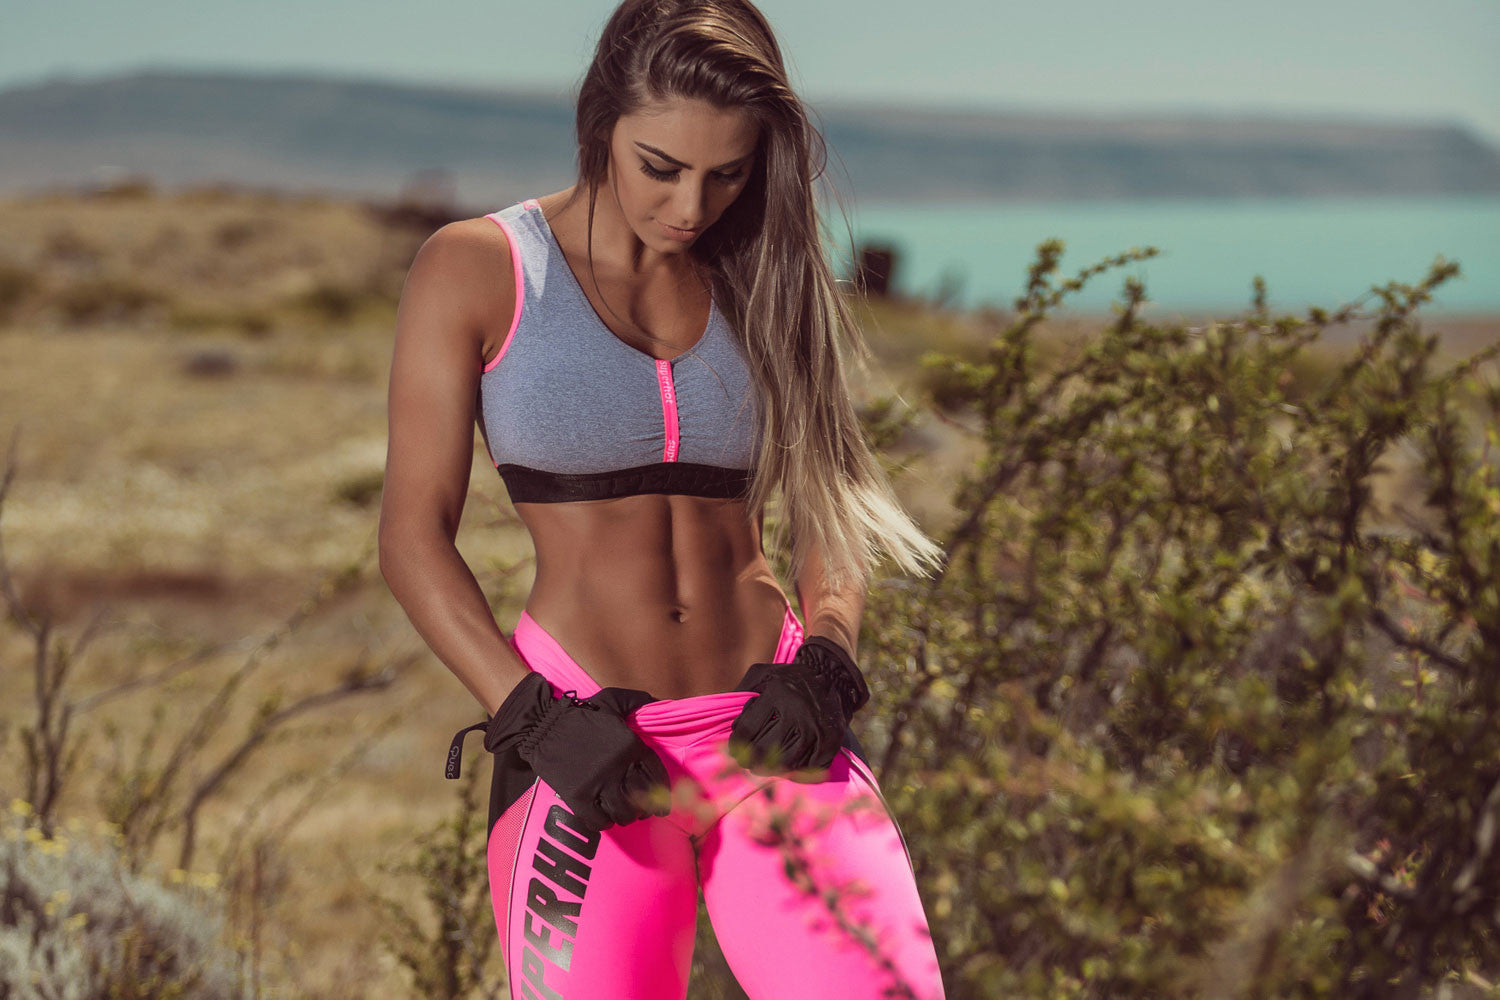 Legging PINK FEVER - SUPERHOT - FitZee